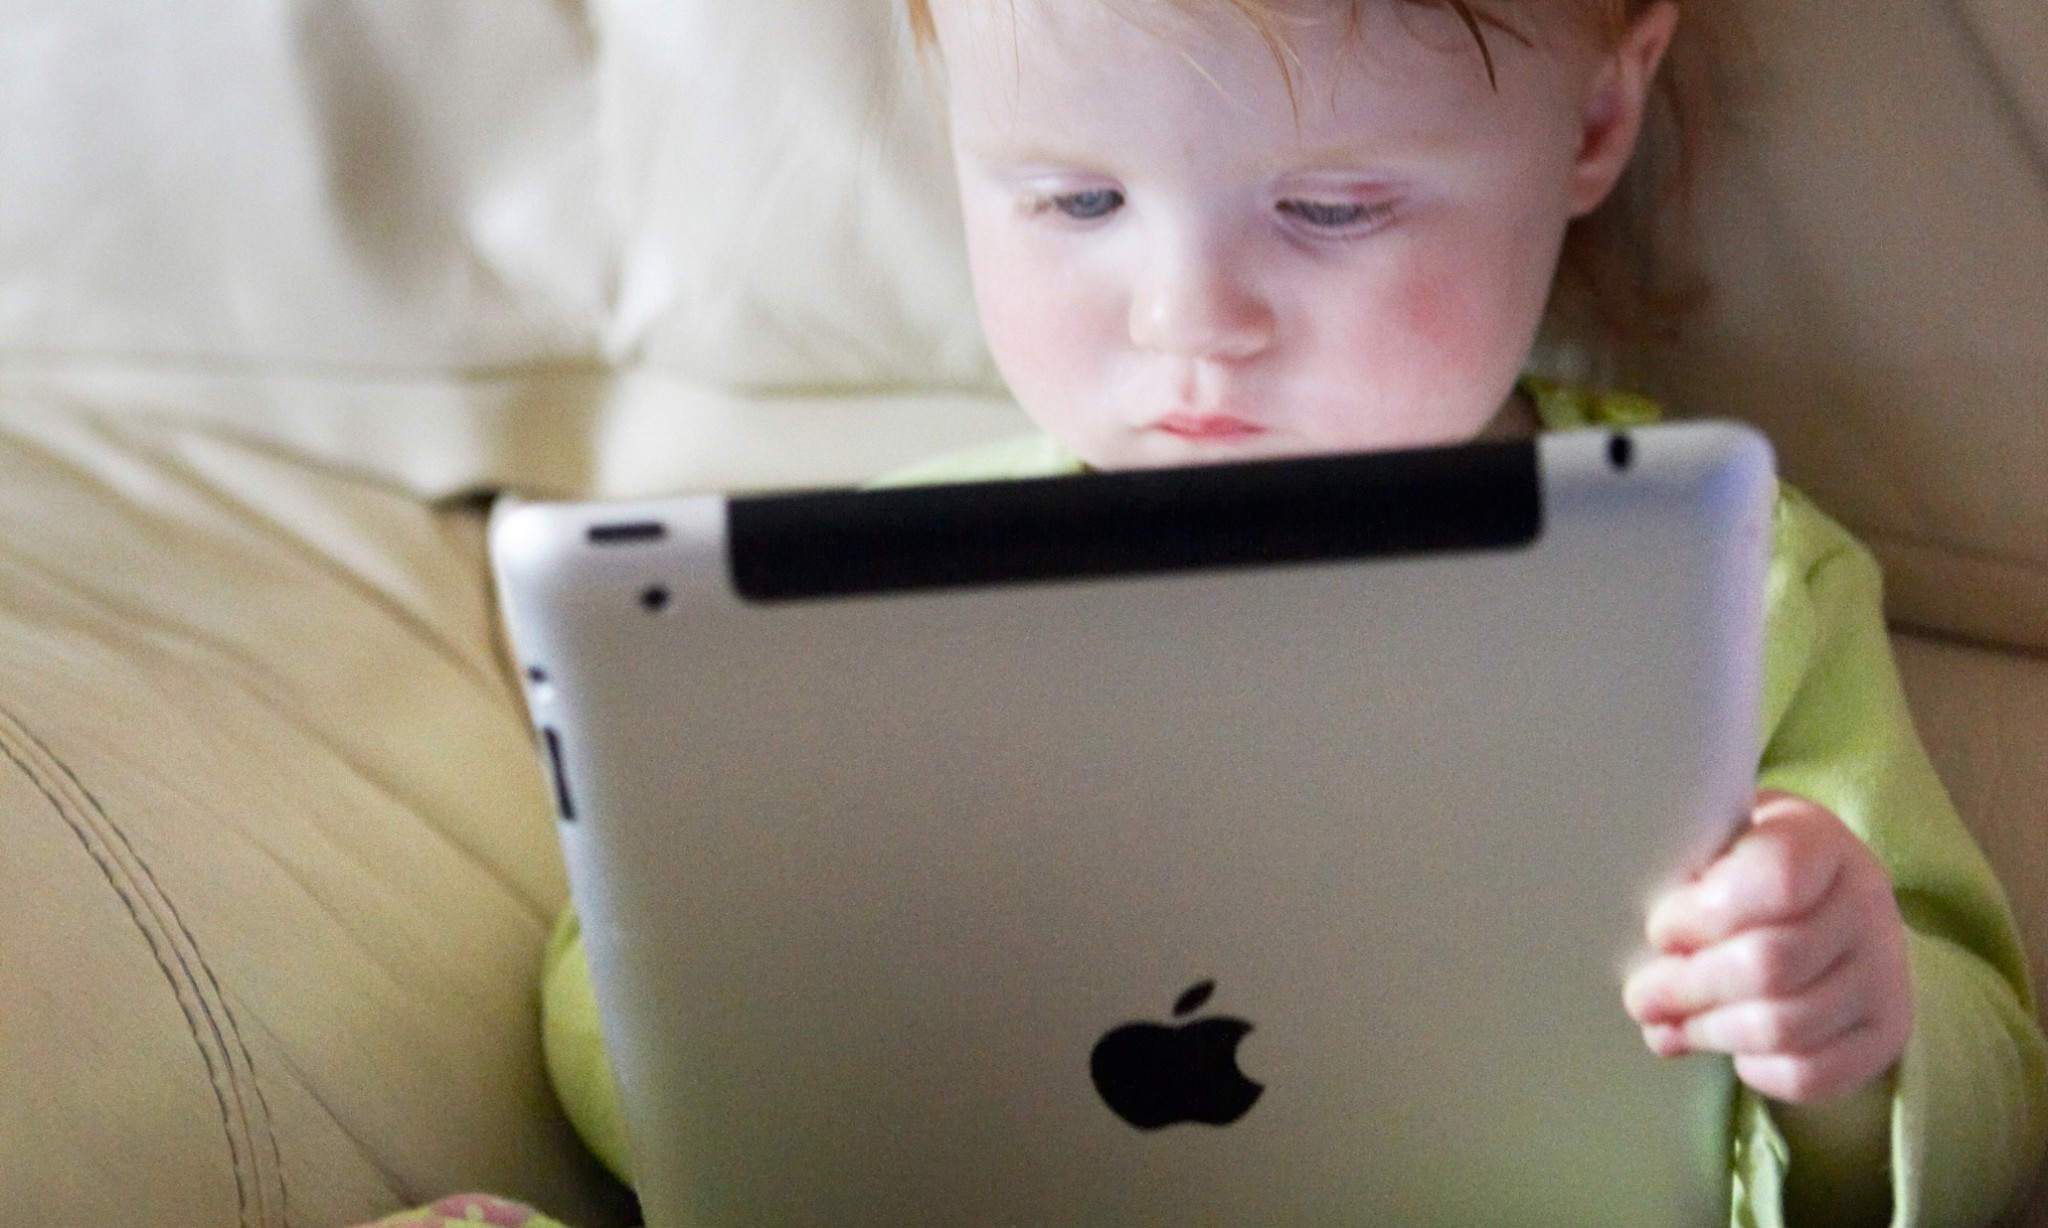 Research says iPads and smartphones may damage toddlers' brains